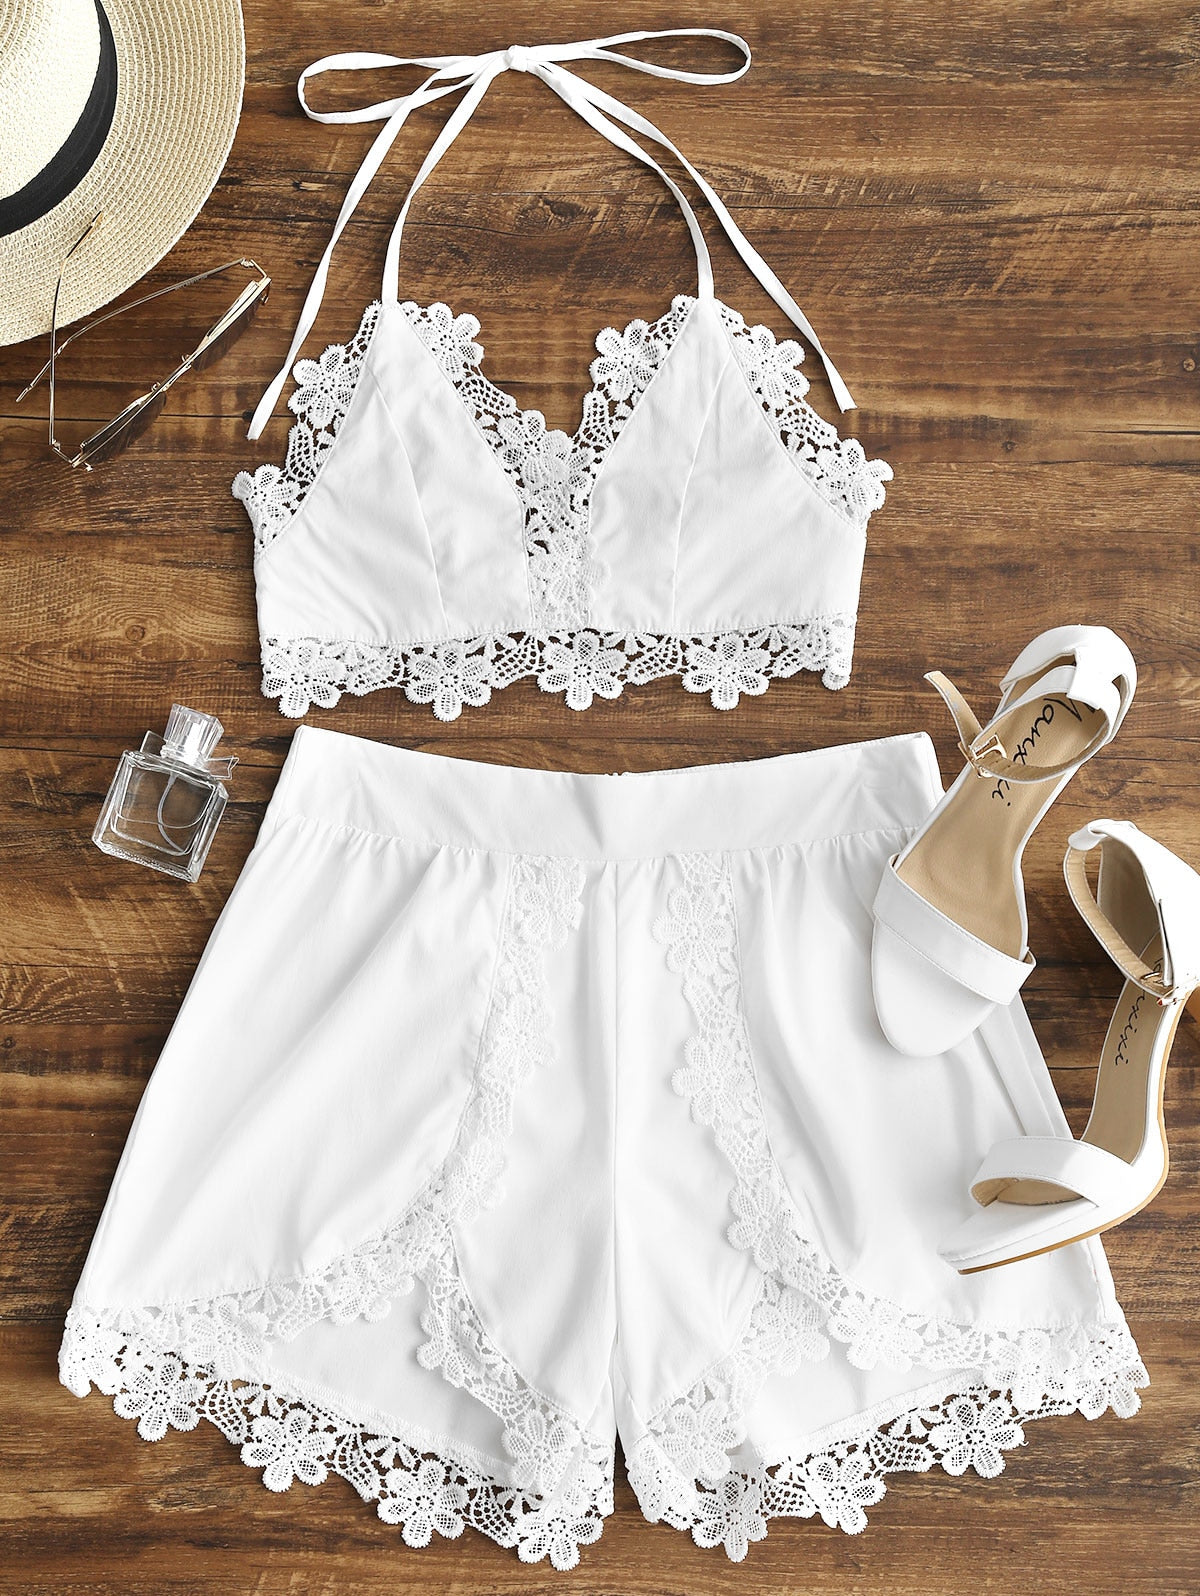 0a170f08d42be4 Wipalo Vrouwen Twee Stukken Set Strik Backless Lacework Halter Cropped Top  Hoge Taille Shorts Suits Casual